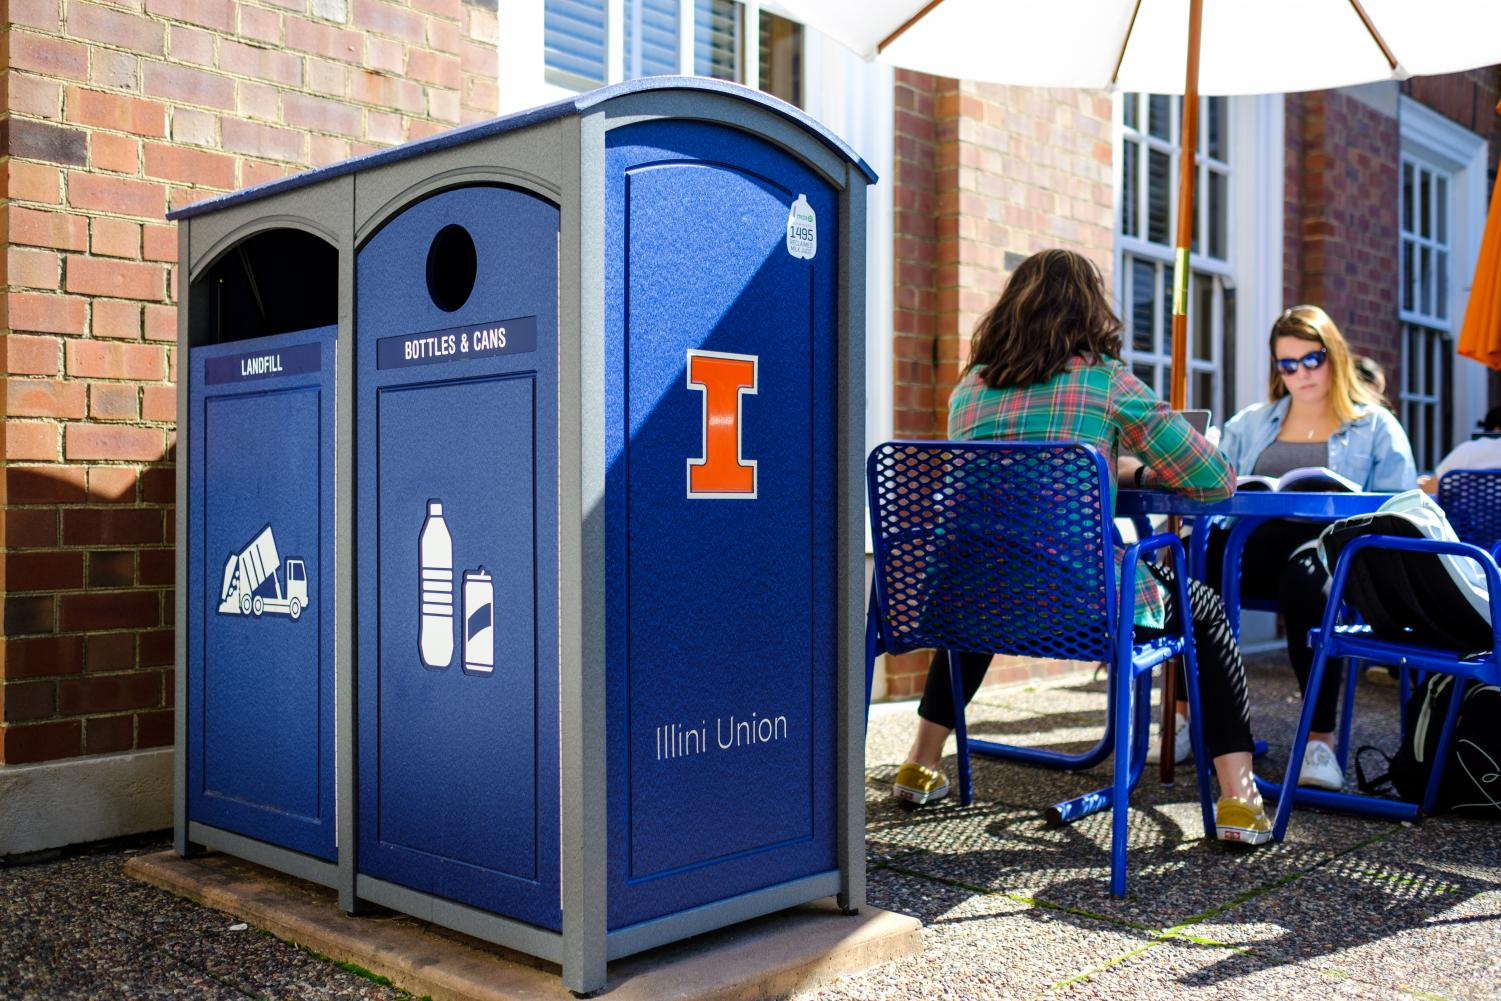 Recycling and trash bins lie near the west courtyard of the Union on Wednesday. The University offers more than 3,000 recycling bins around campus including glass deposits.